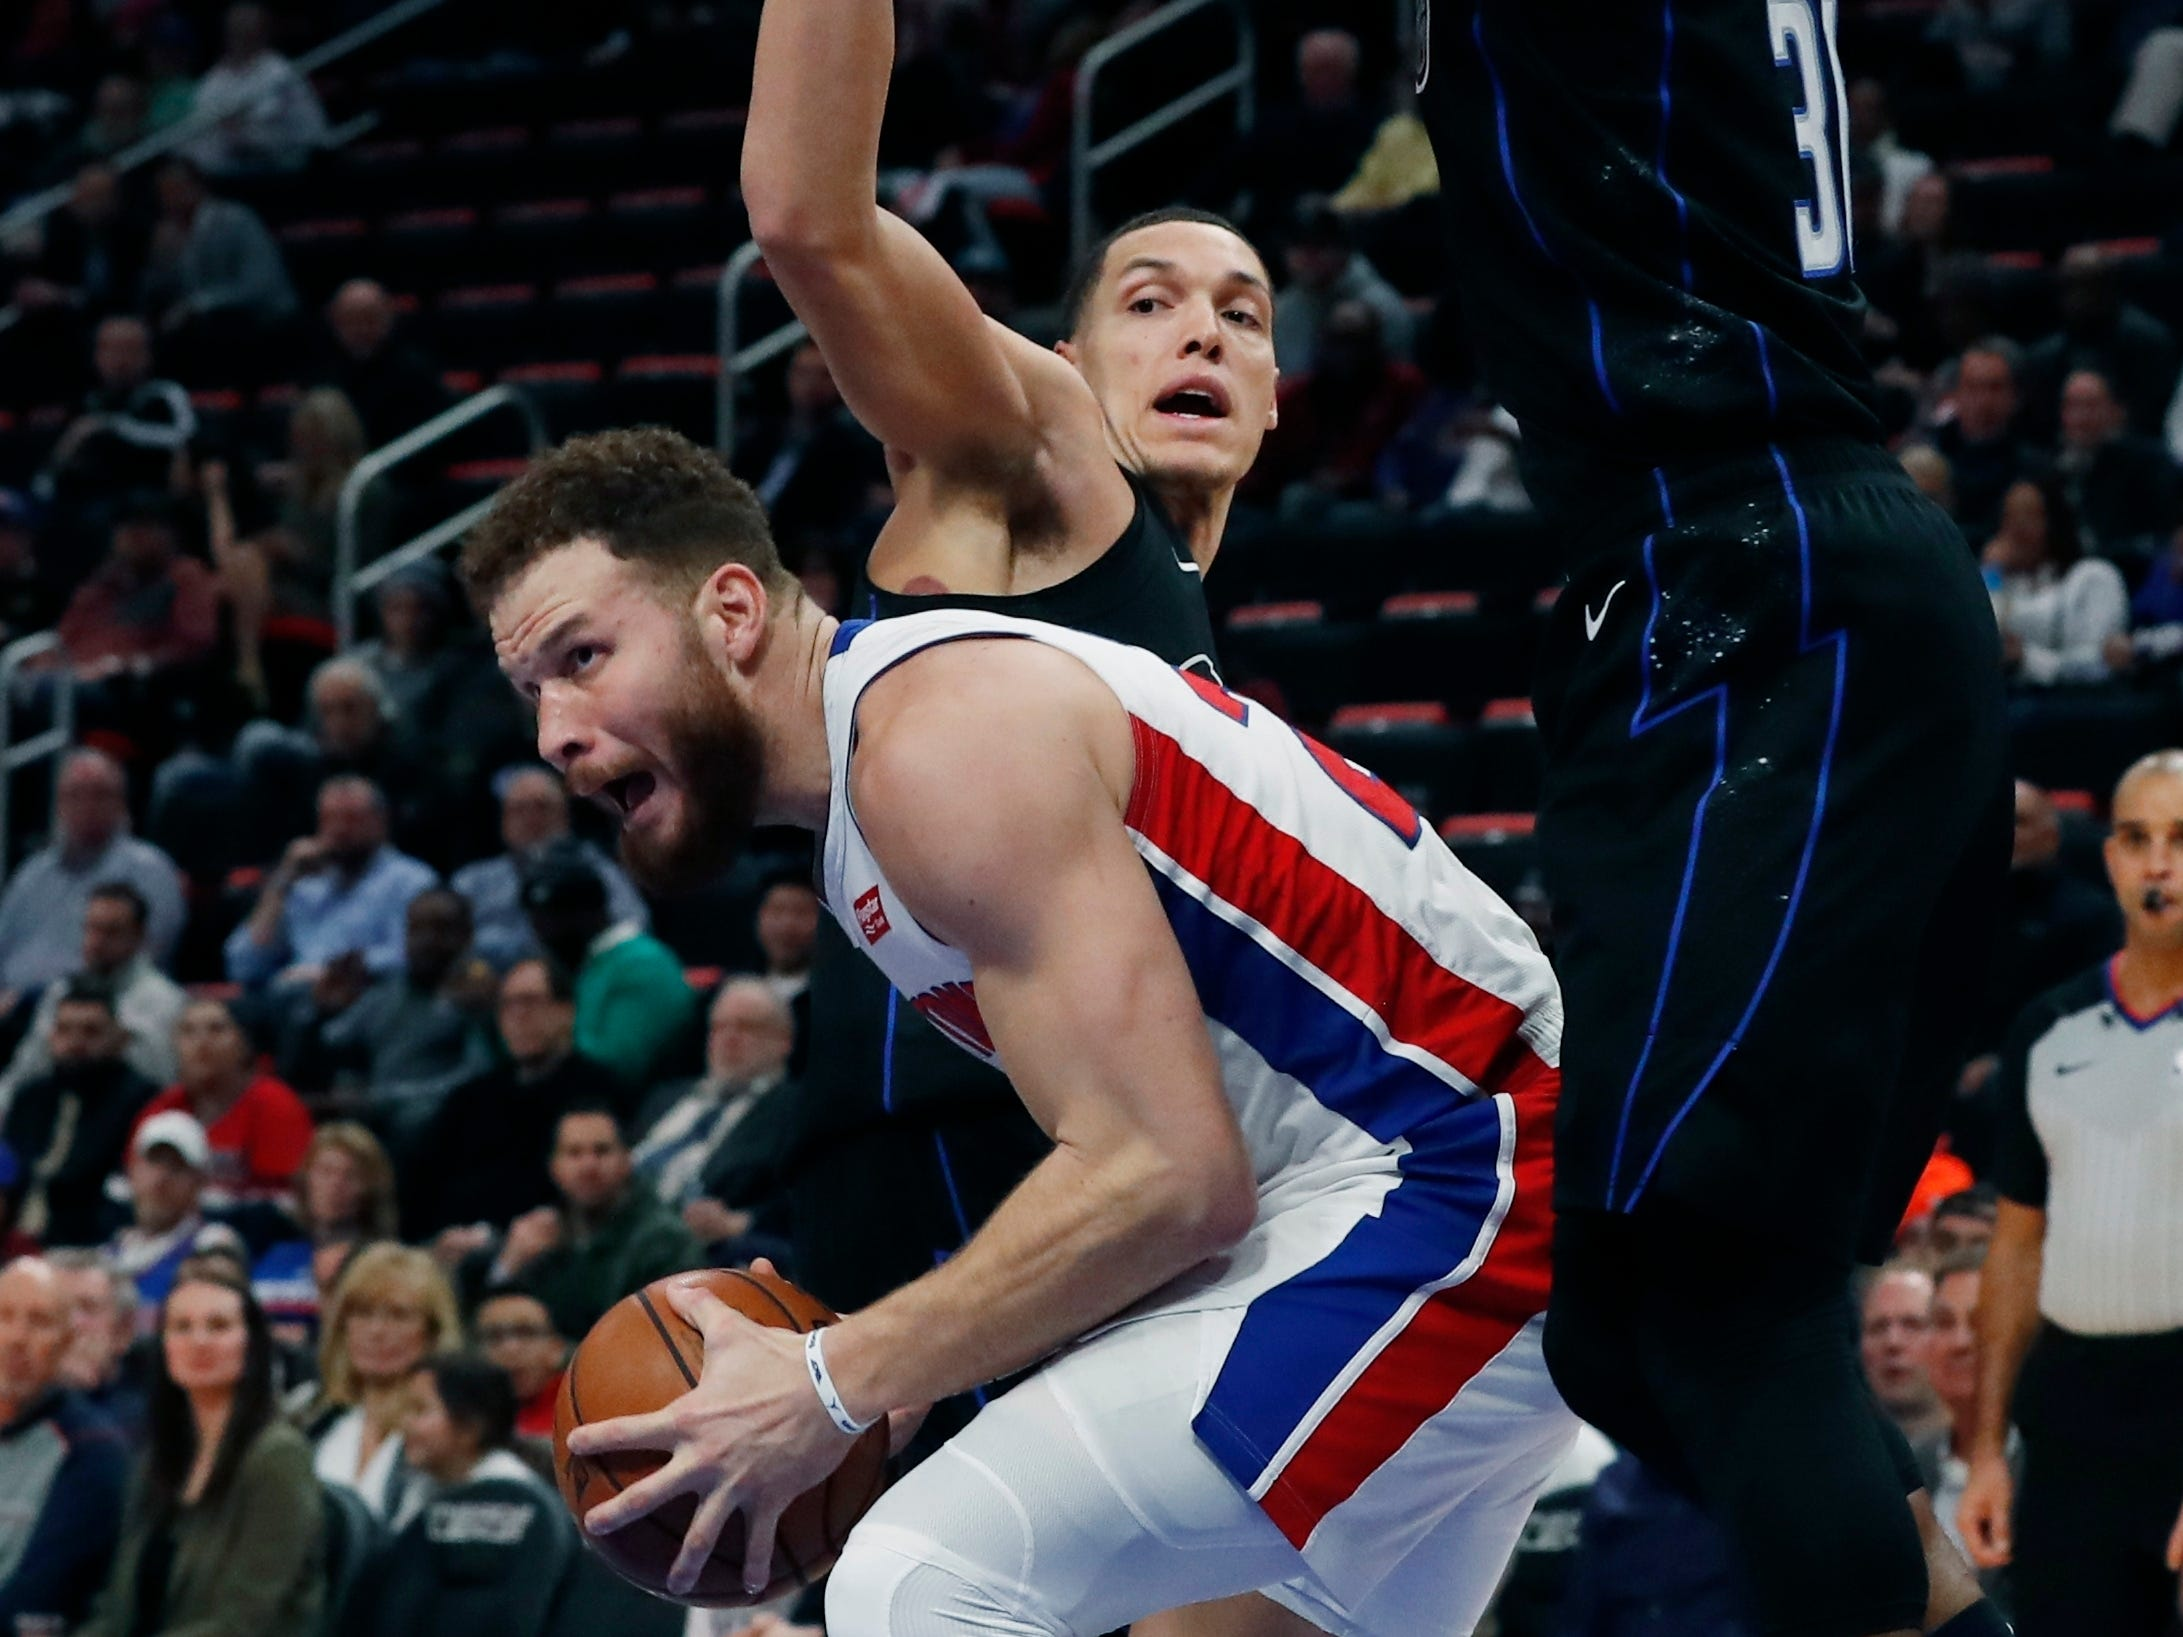 Detroit Pistons forward Blake Griffin (23) looks to shoot as Orlando Magic forward Aaron Gordon and guard Terrence Ross (31) defend during the first half.